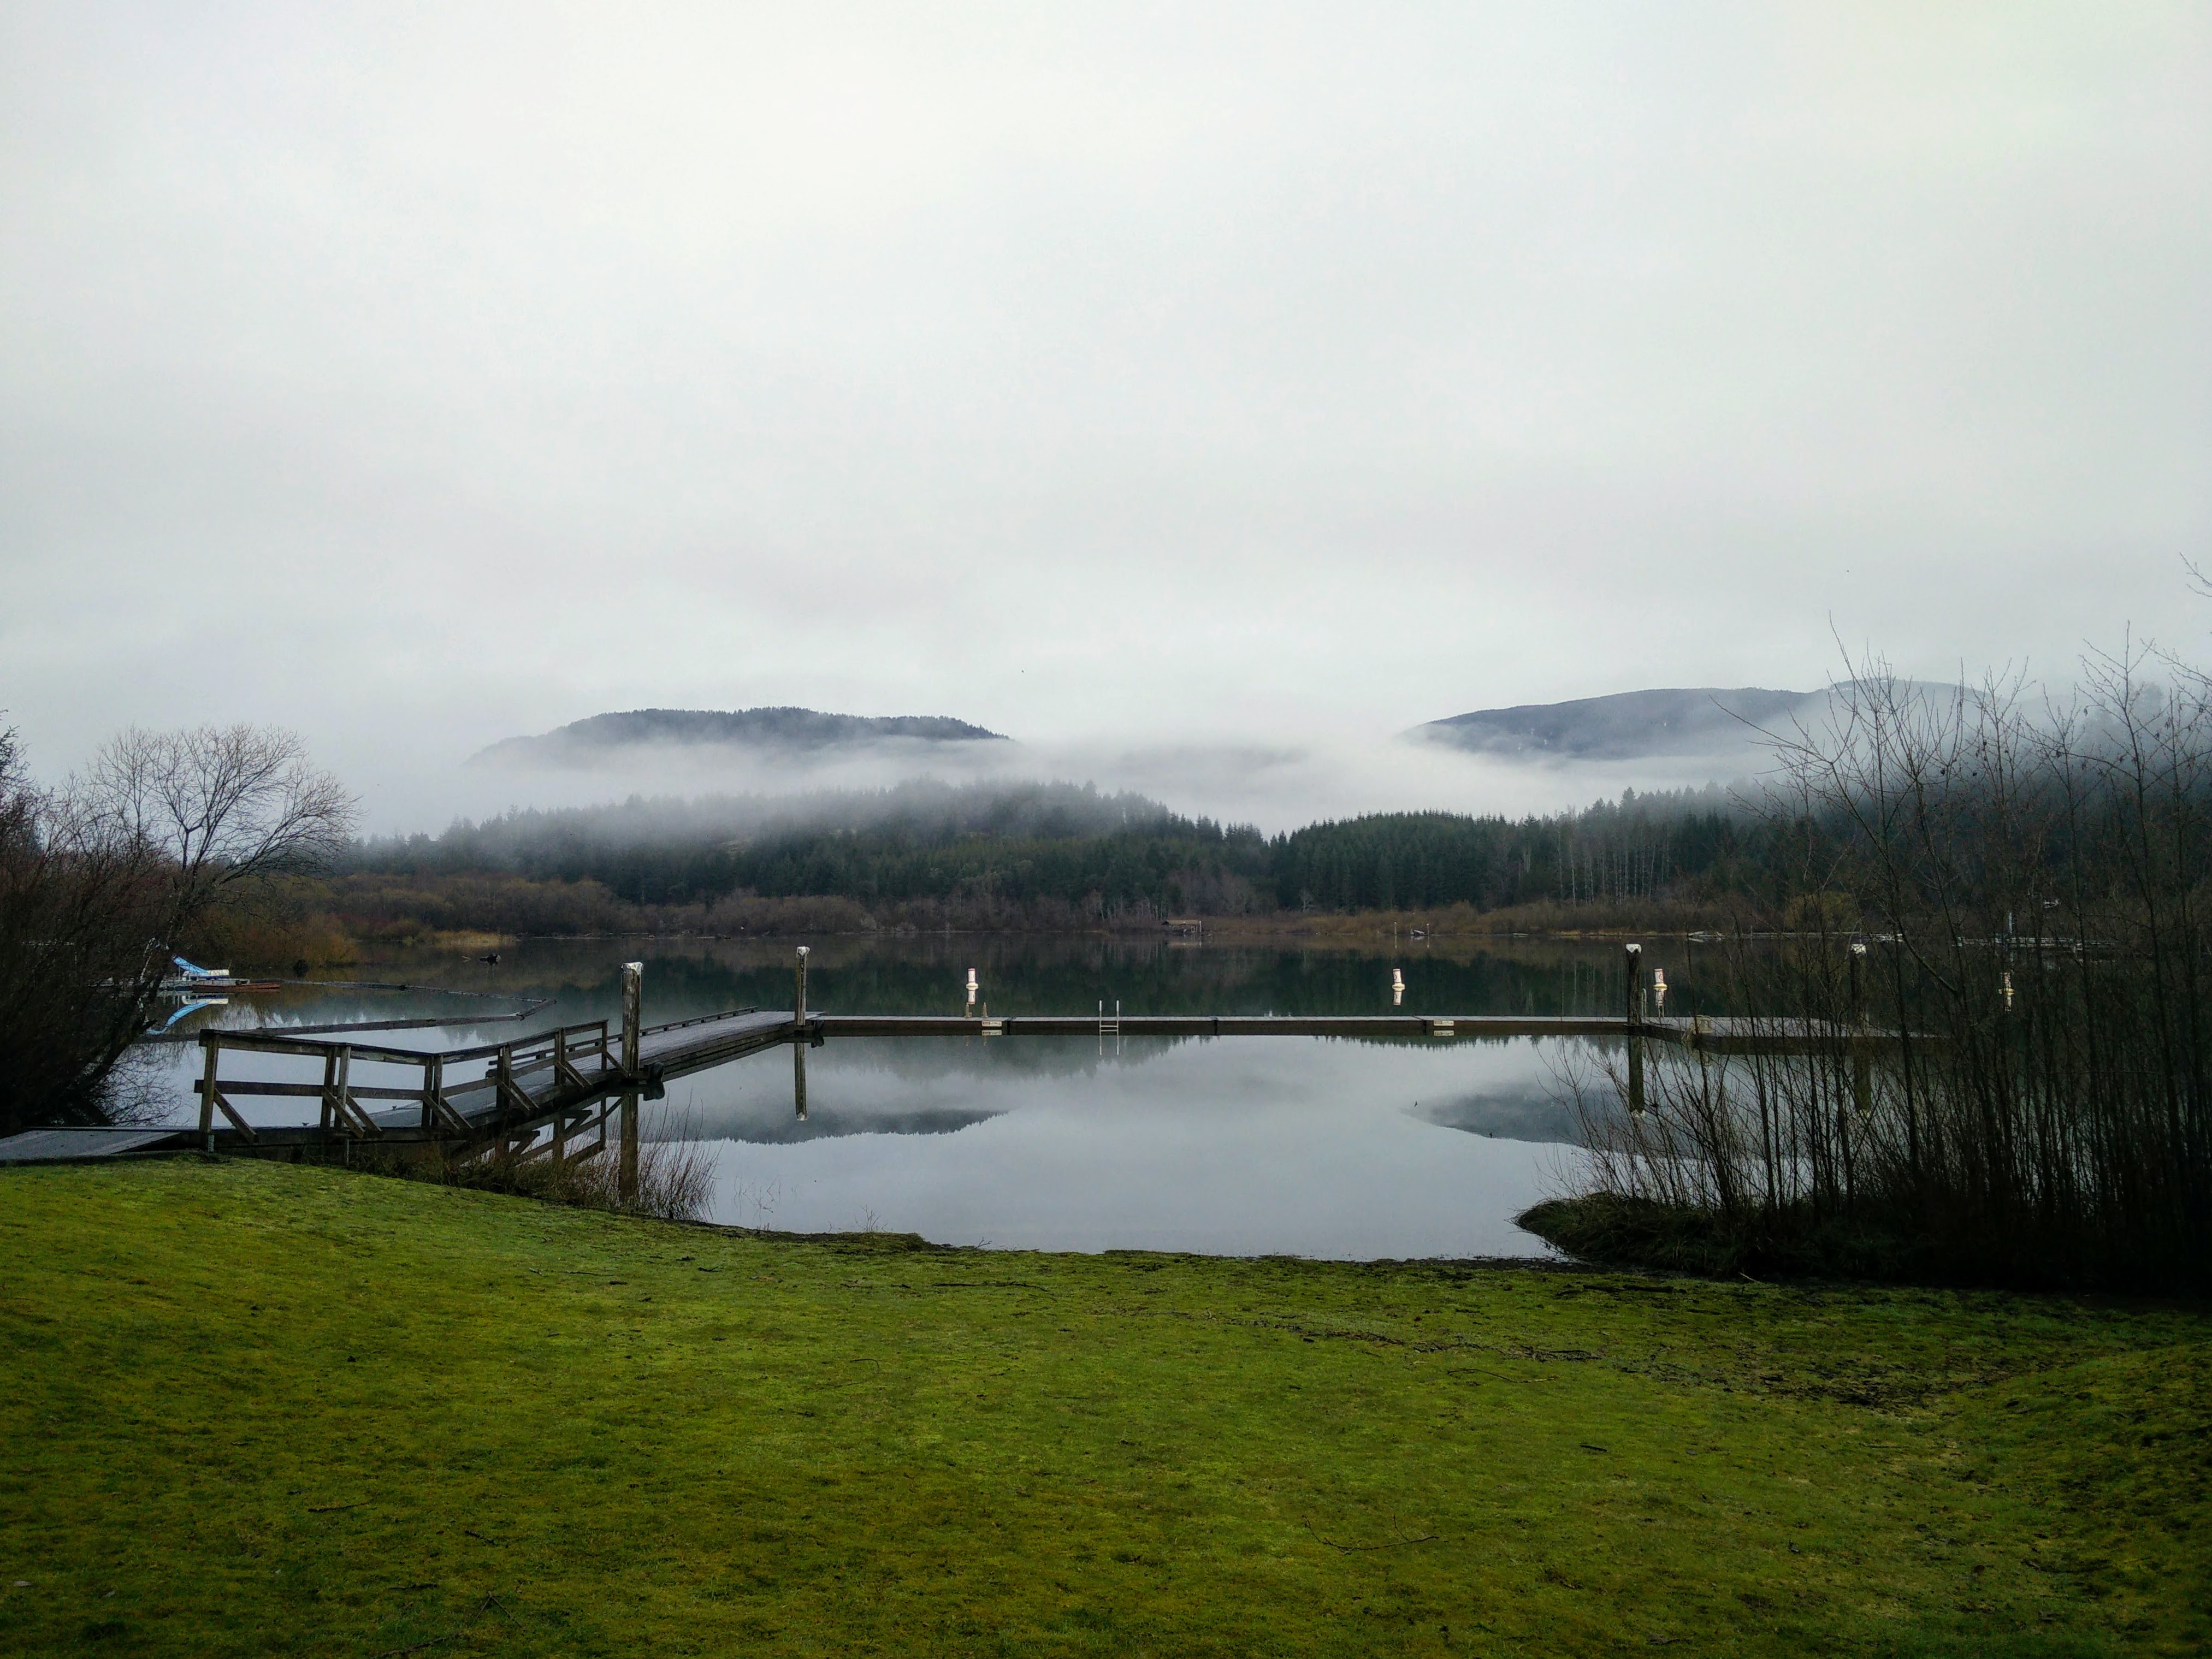 A foggy lake in Cowichan Valley